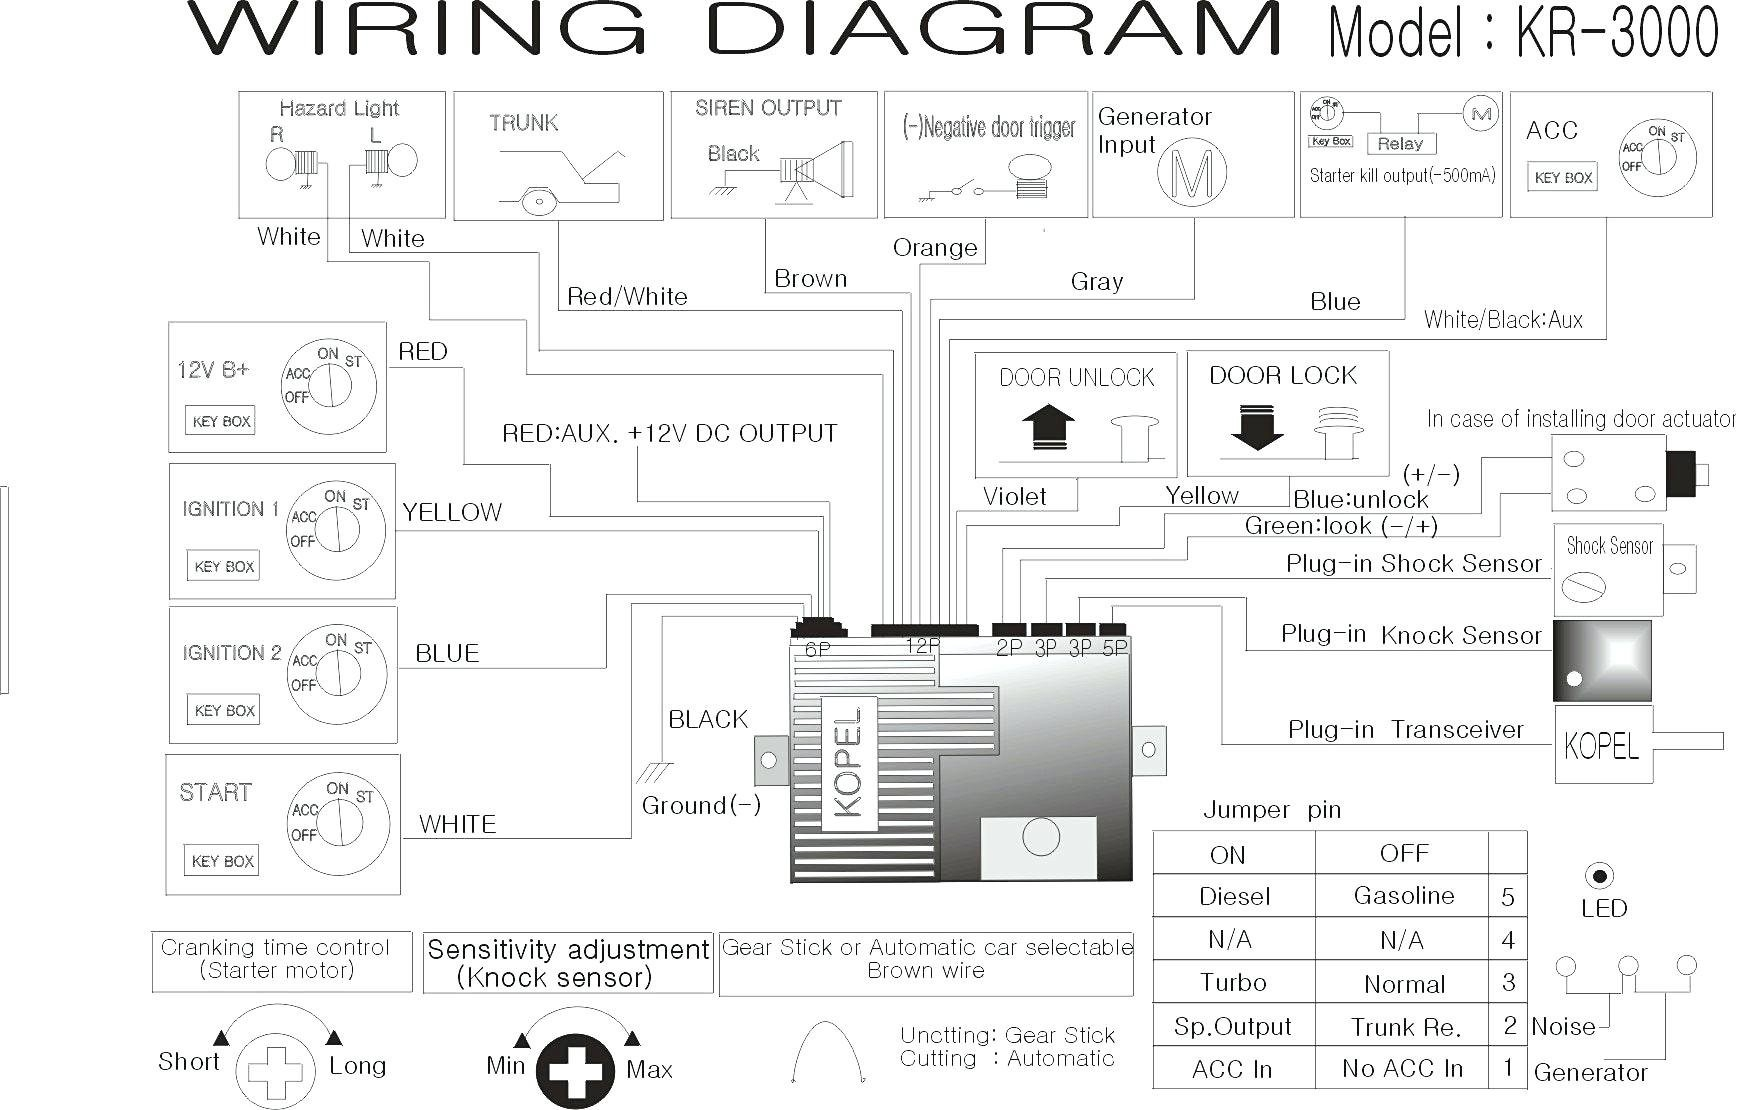 pioneer avh 280bt wiring diagram Download-Automotive Stereo Wiring Diagram Inspirationa Pioneer Avh 280bt Wiring Diagram Best Pioneer Car Stereo Wiring 14-c